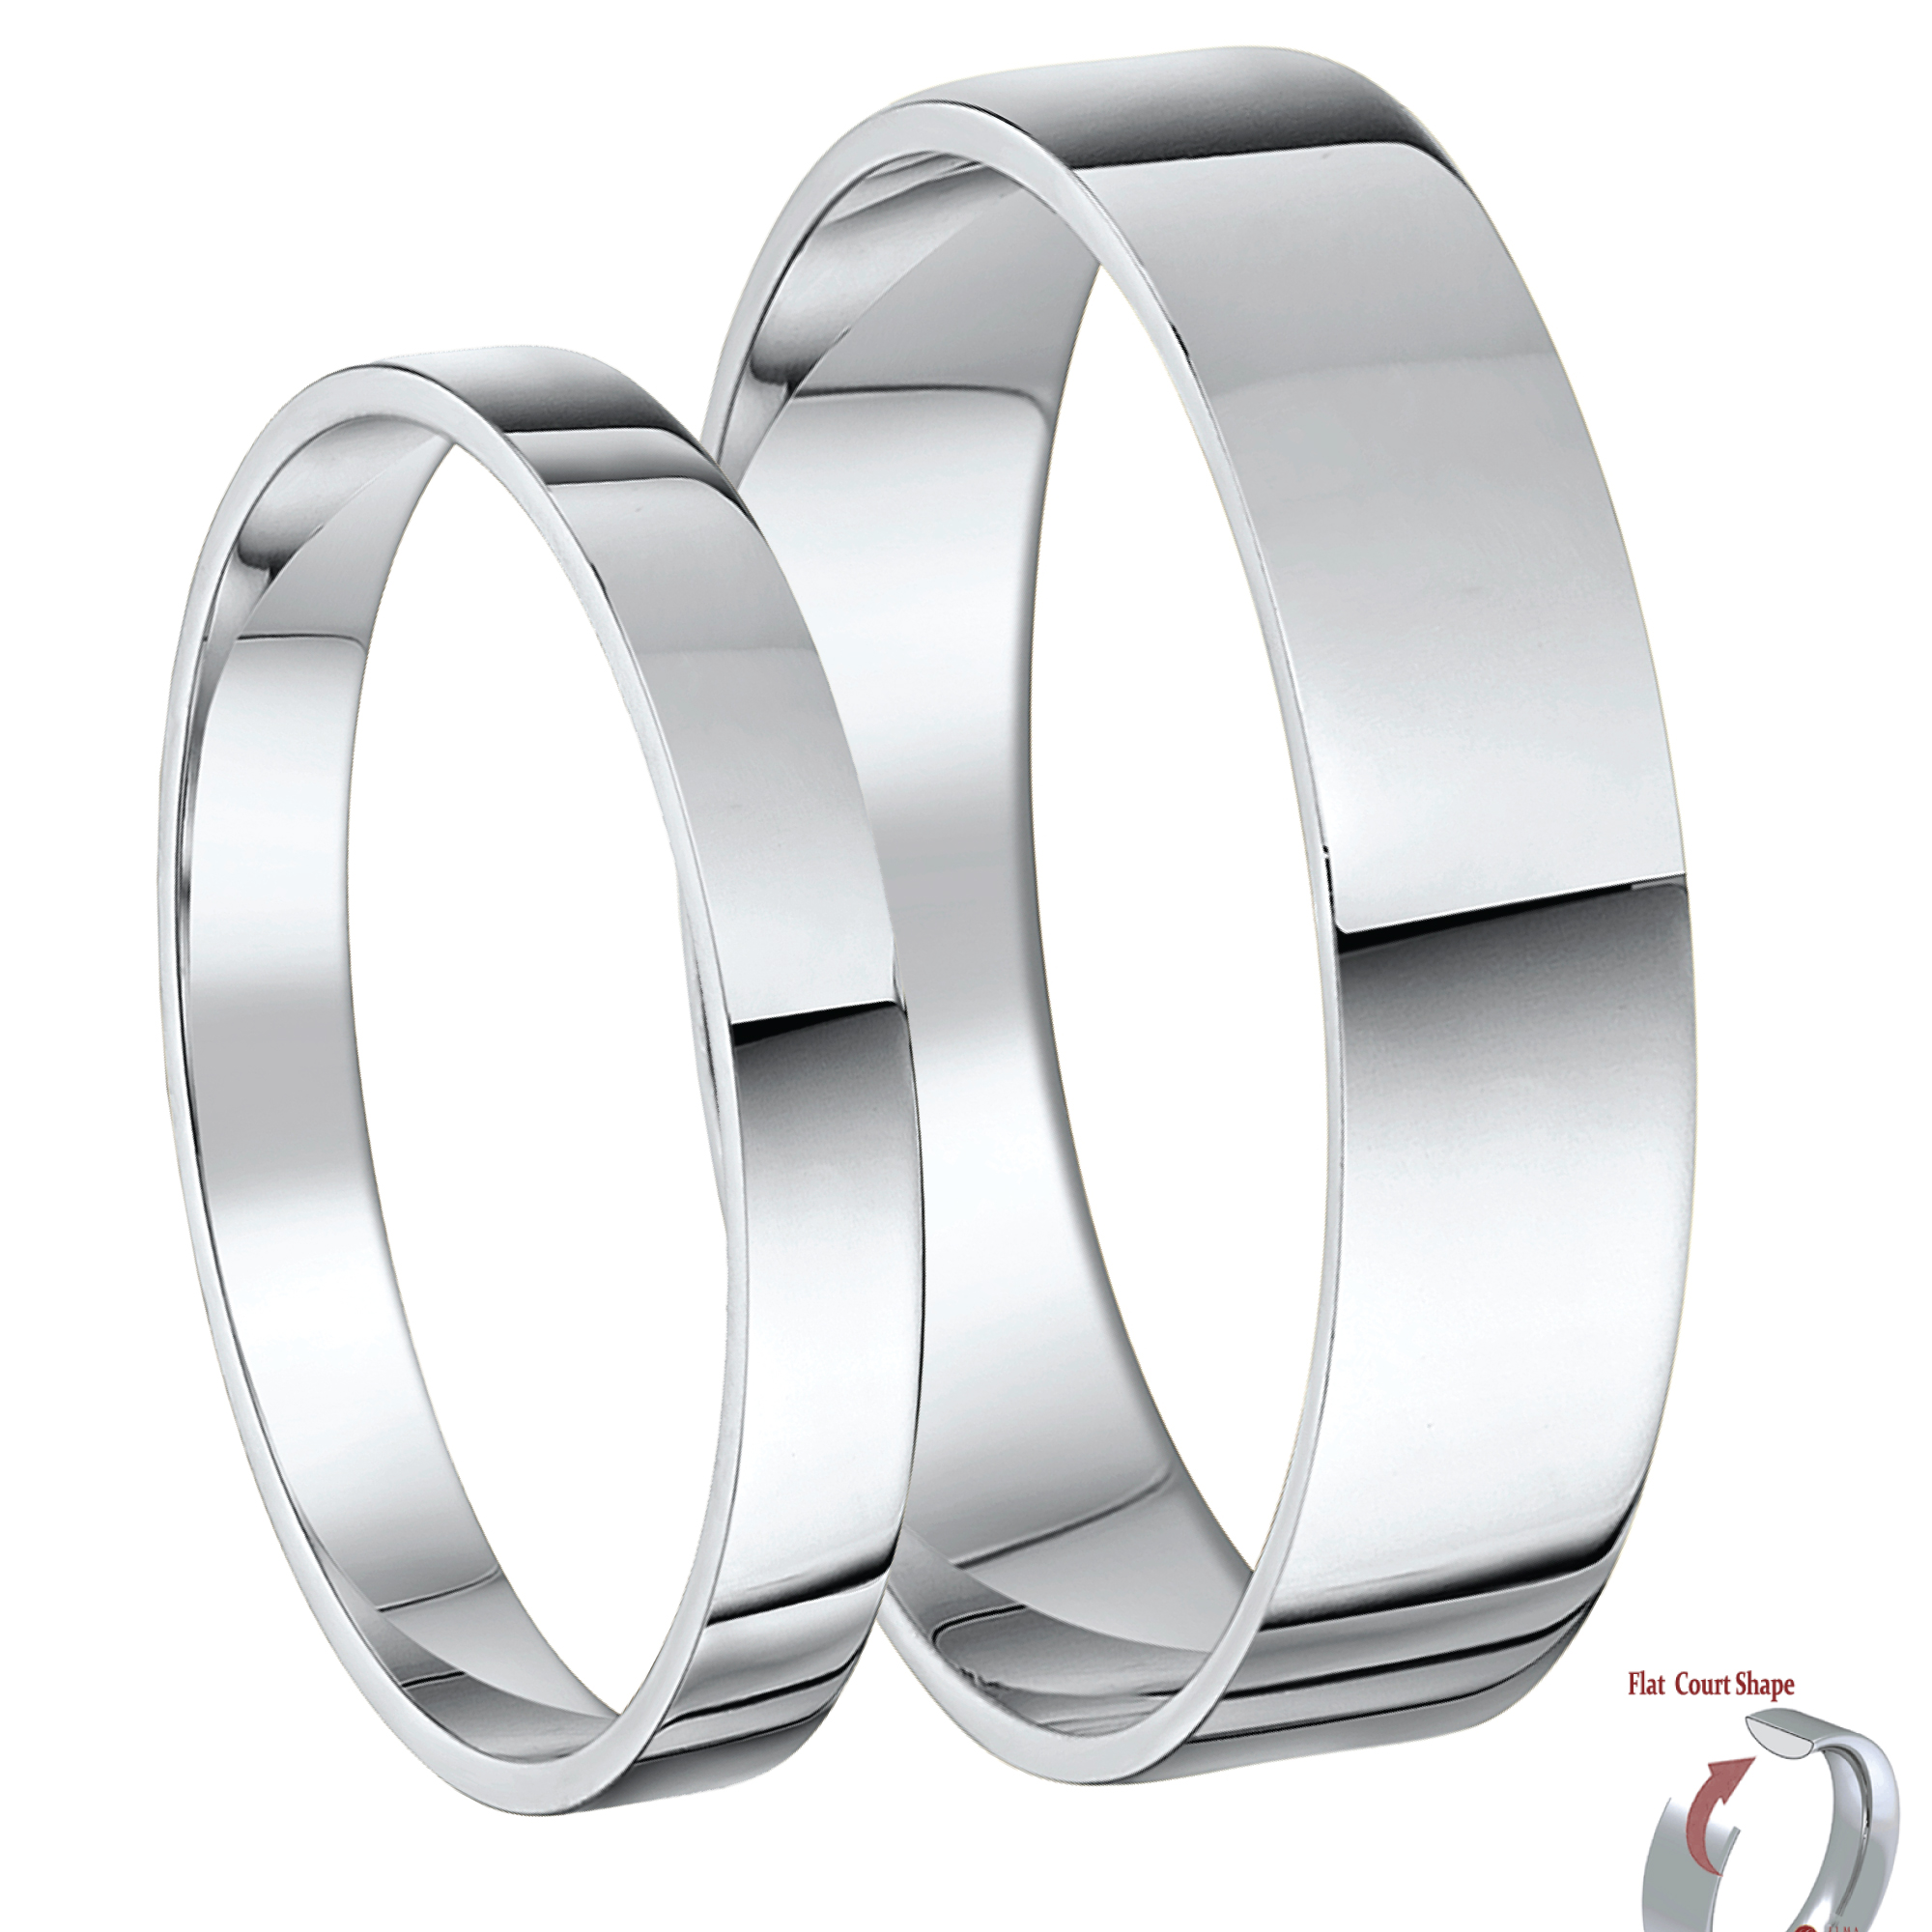 b5e069a5145f1 Palladium Wedding Rings - Plain Classic Palladium 500 and 950 ...